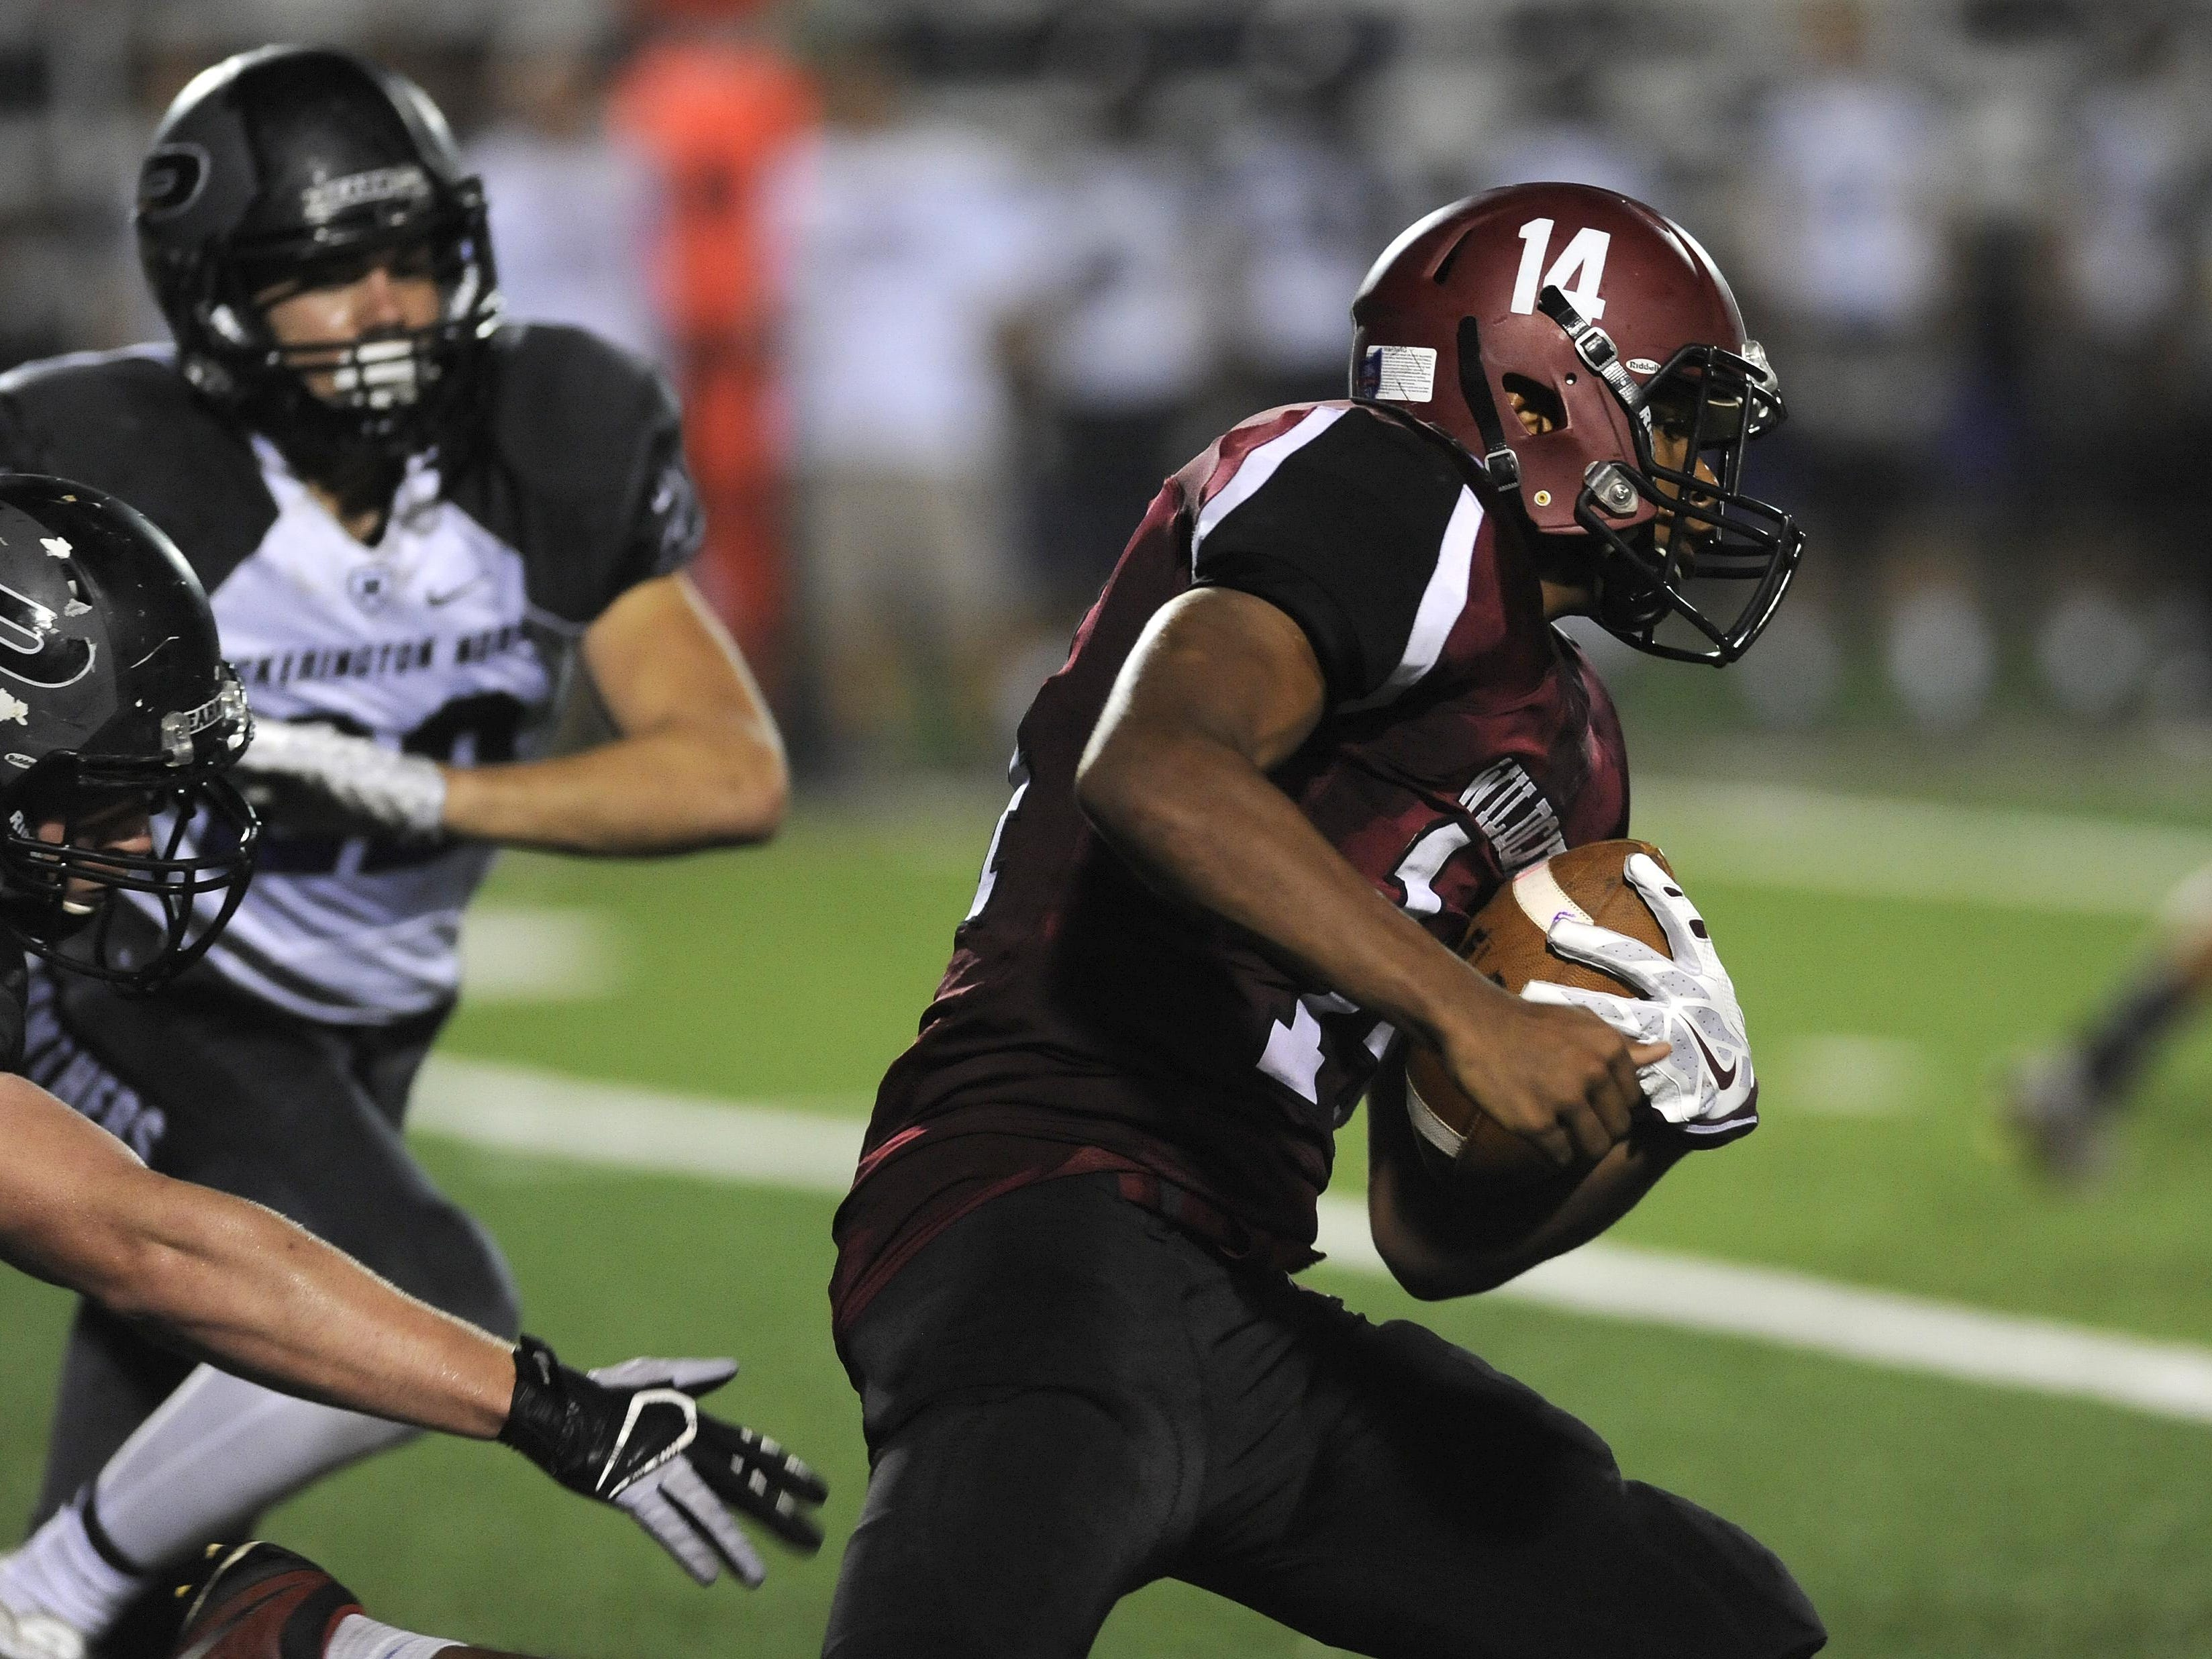 Newark running back D'ante Woods carries the ball during this past Friday's game against Pickerington North.